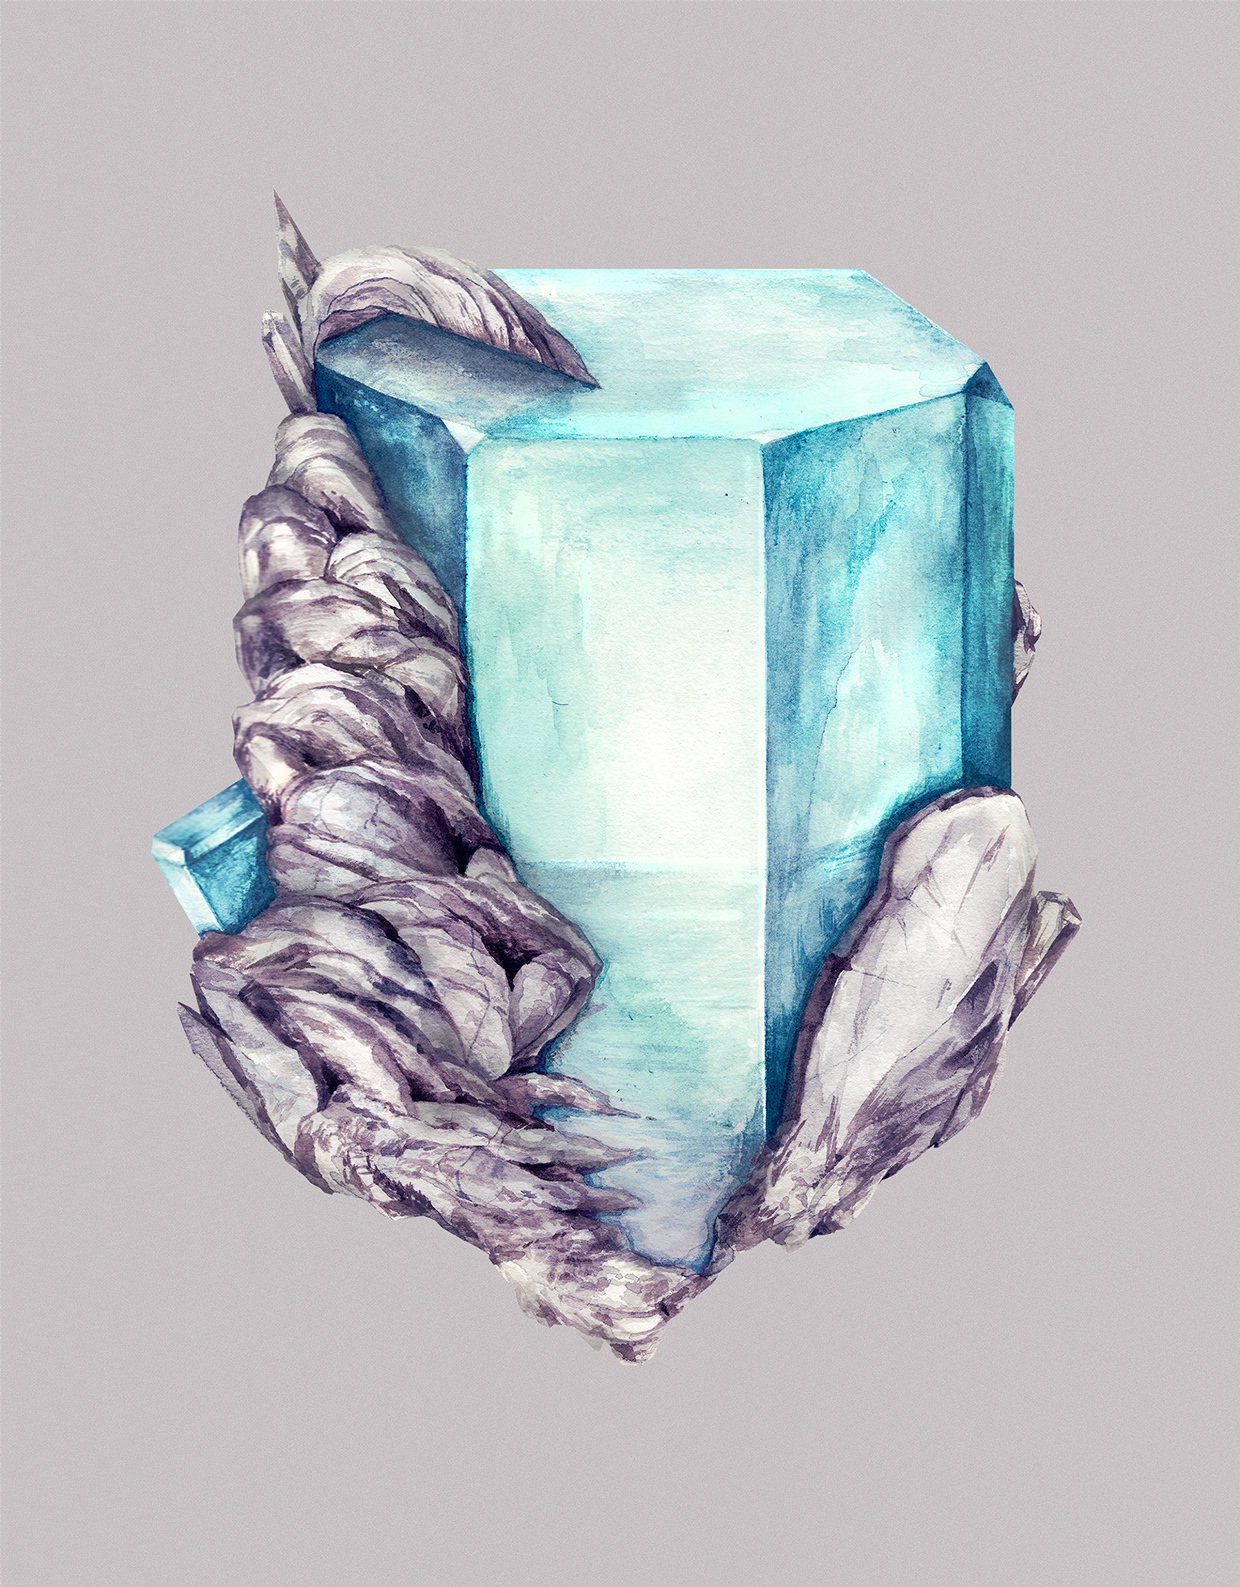 Watercolor Paintings of Crystals by Karina Eibatova (4)